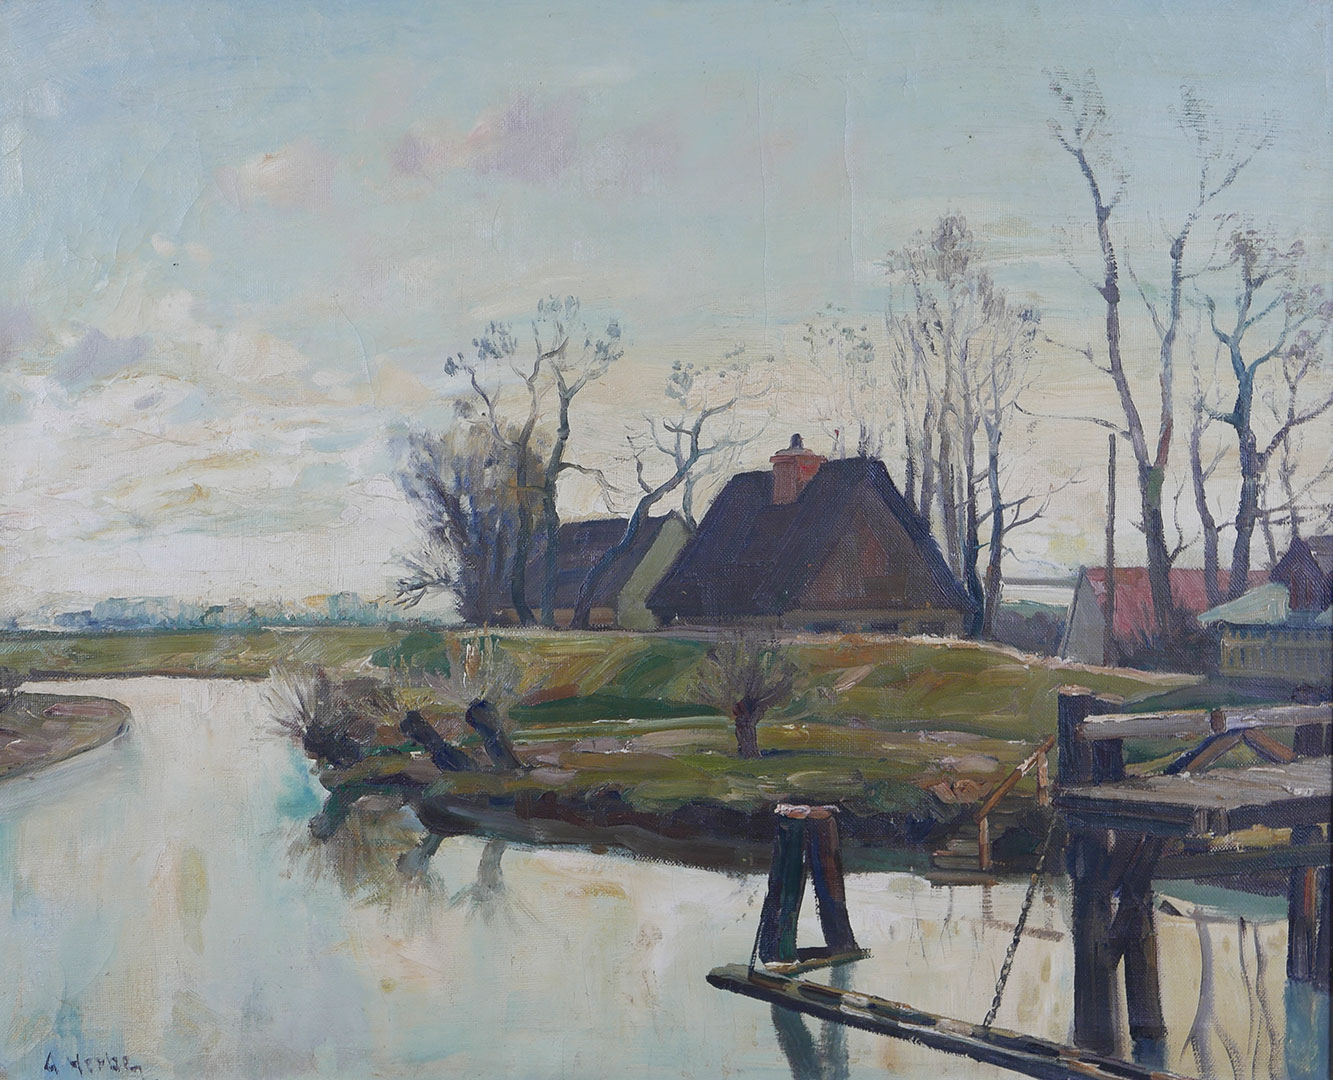 Houses by winding river